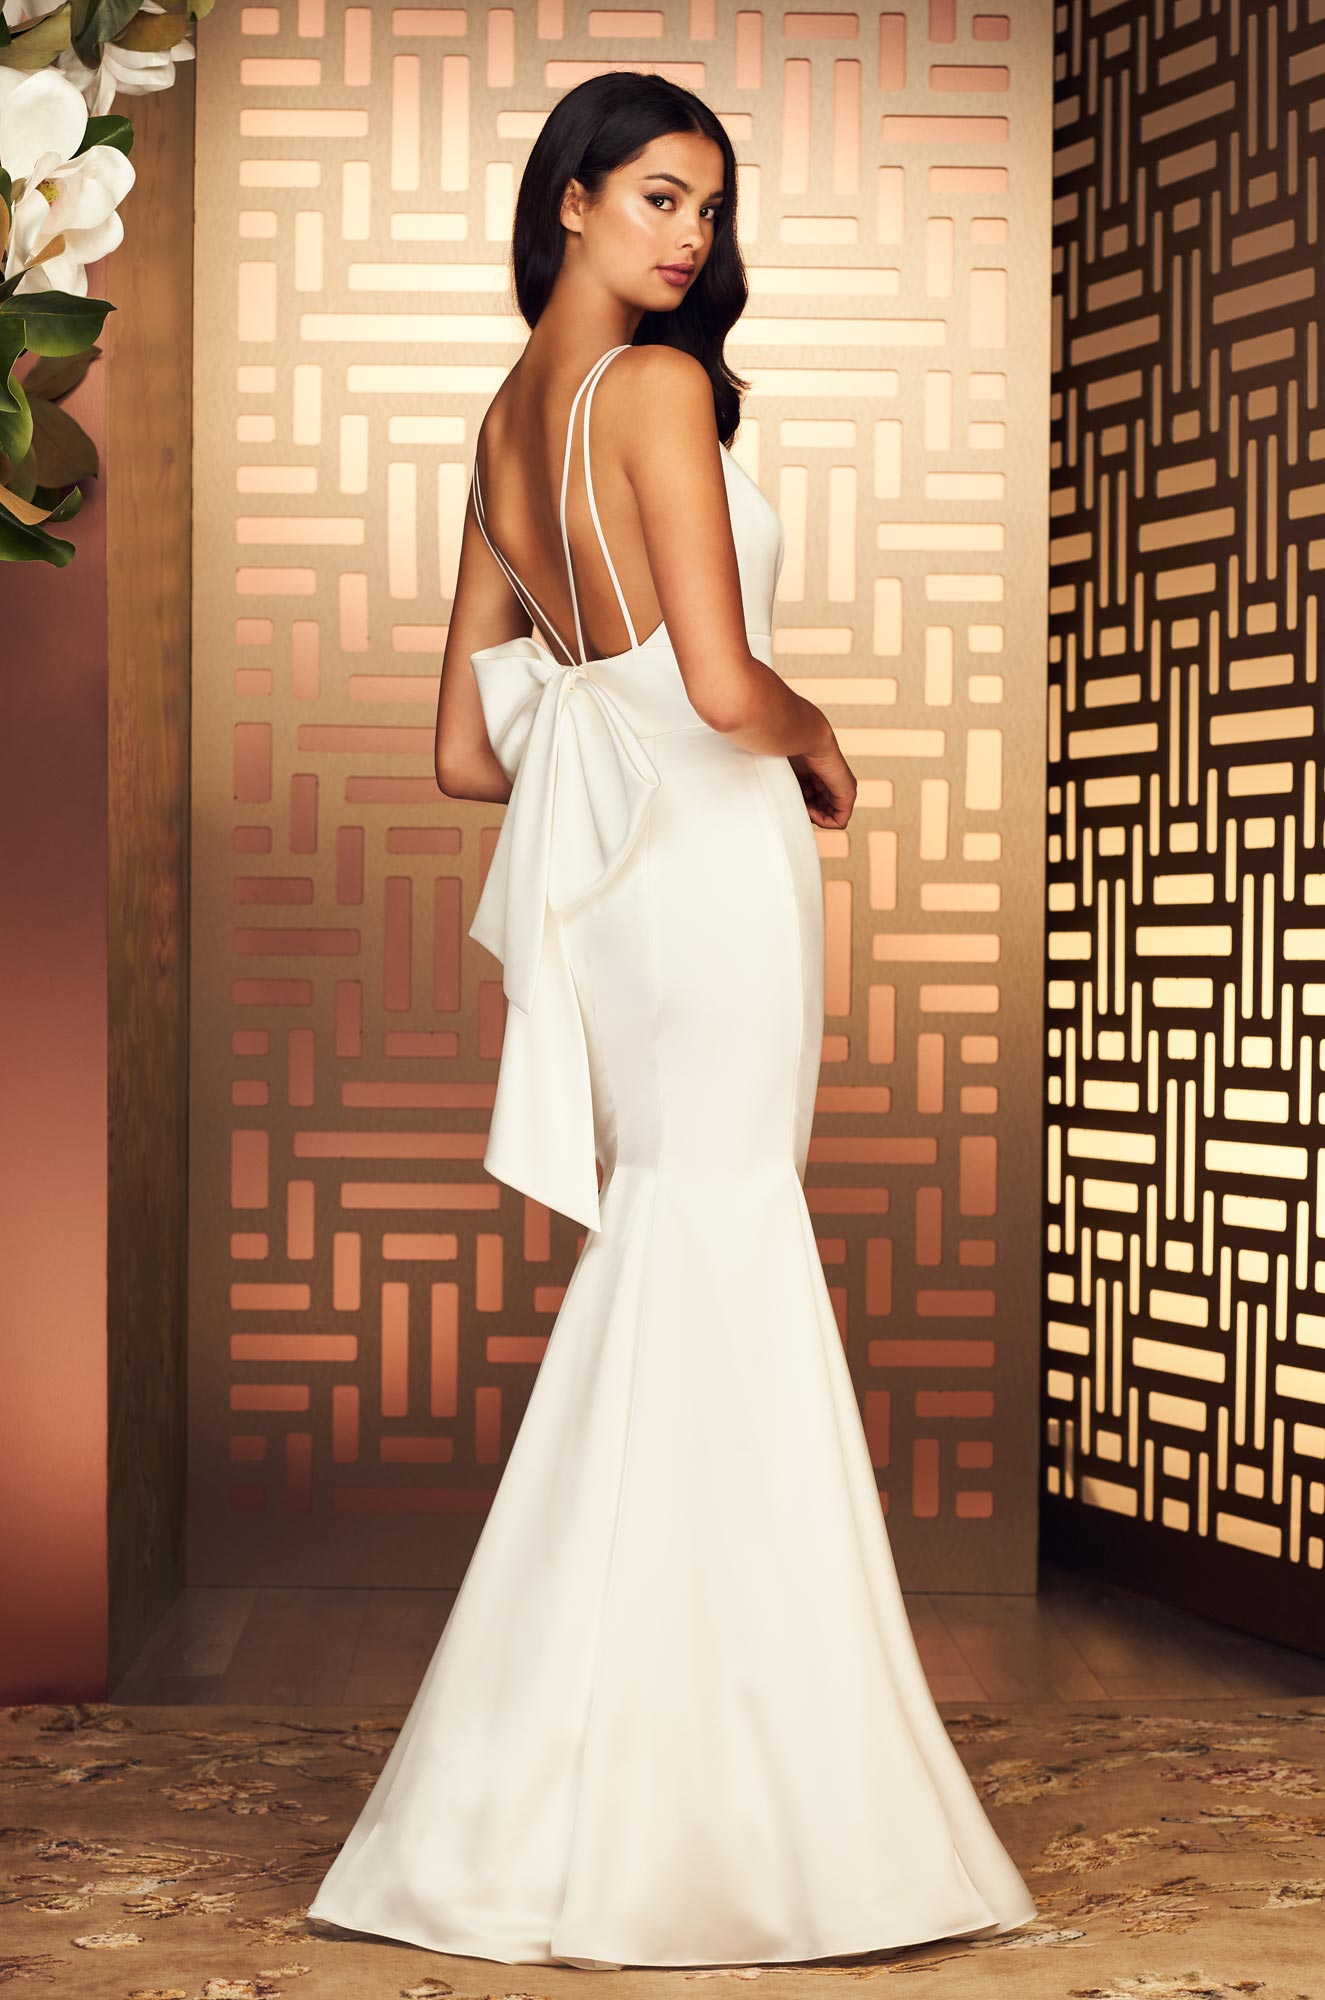 Refined Satin Wedding Dress - Style #4894 | Paloma Blanca